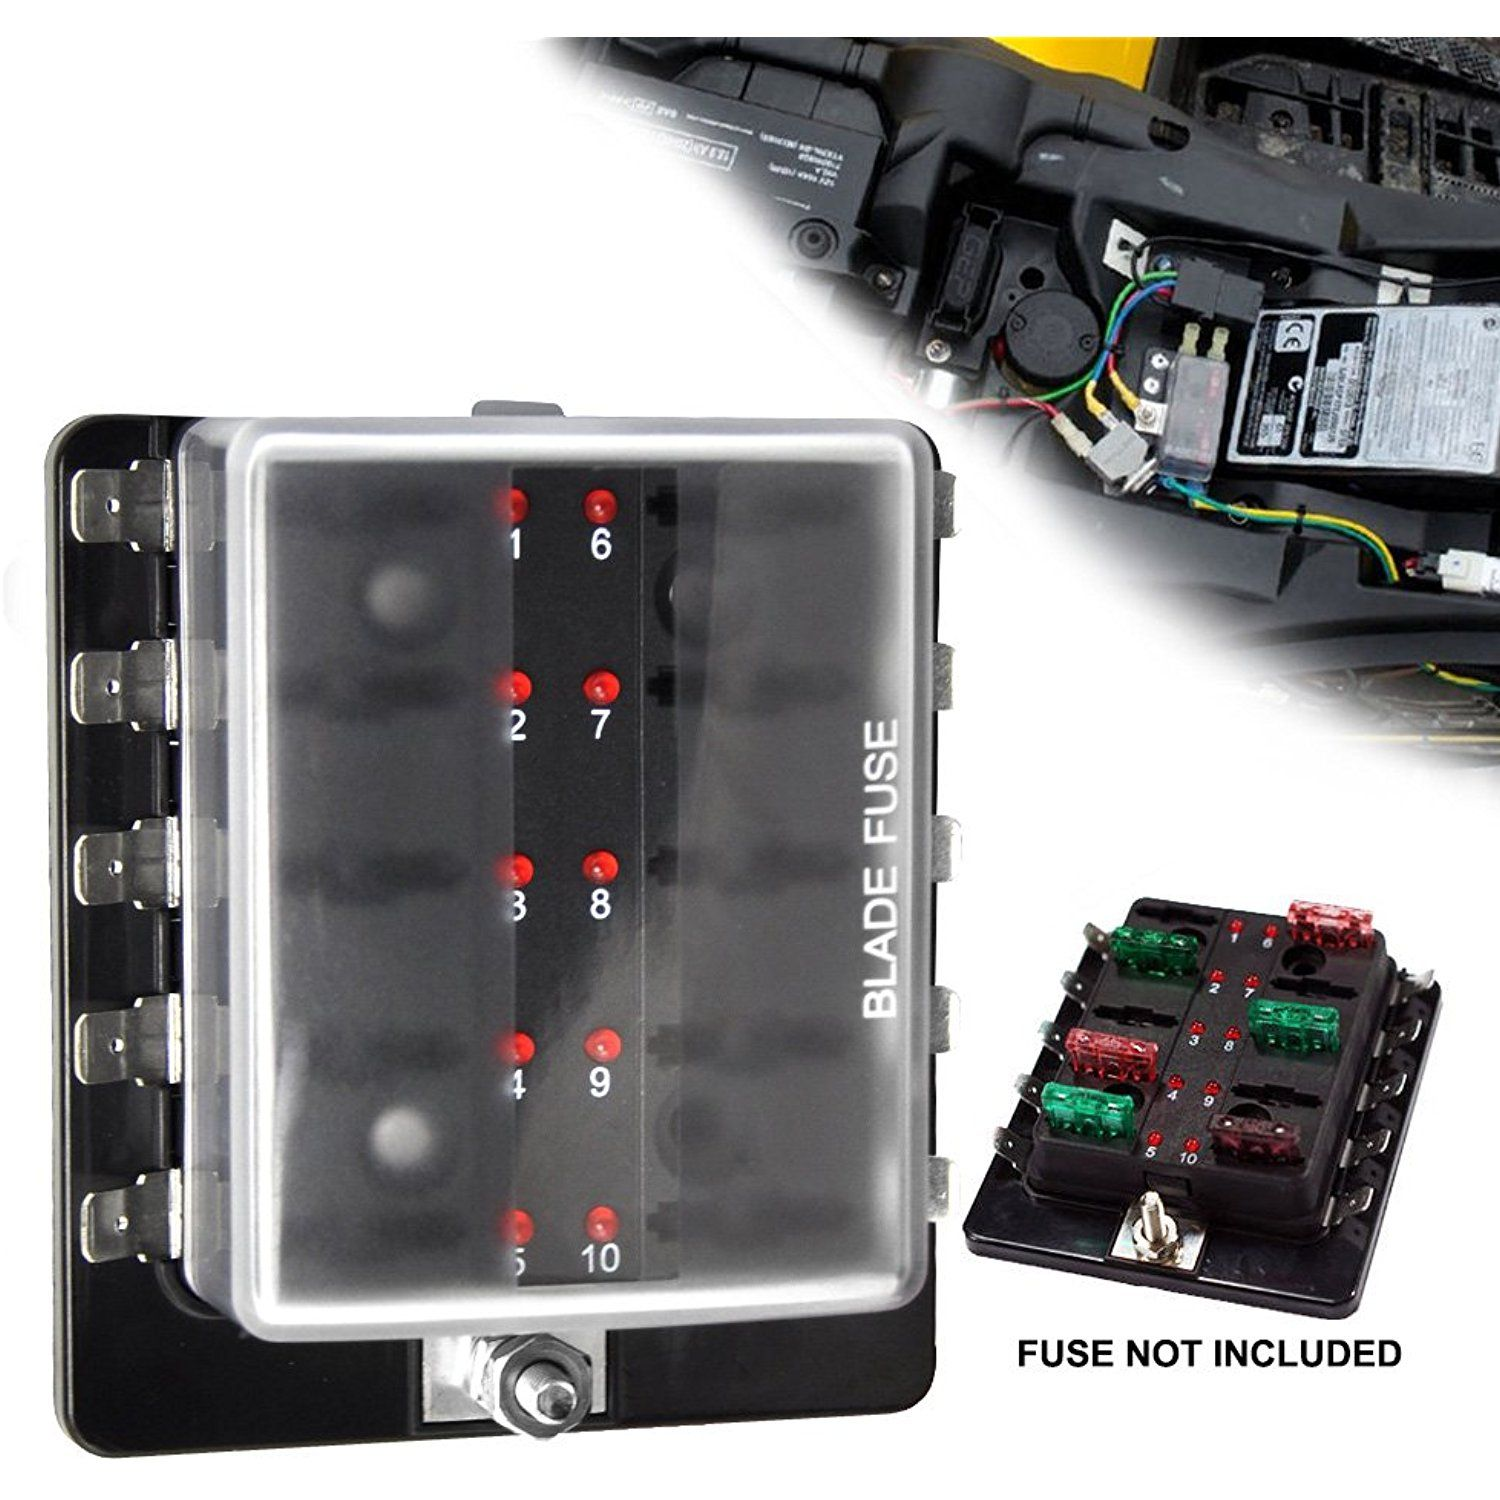 medium resolution of liteway 10 way blade fuse holder box 12 32v led illuminated automotive fuse block for car boat marine trike with led warning light kit 2 years warranty